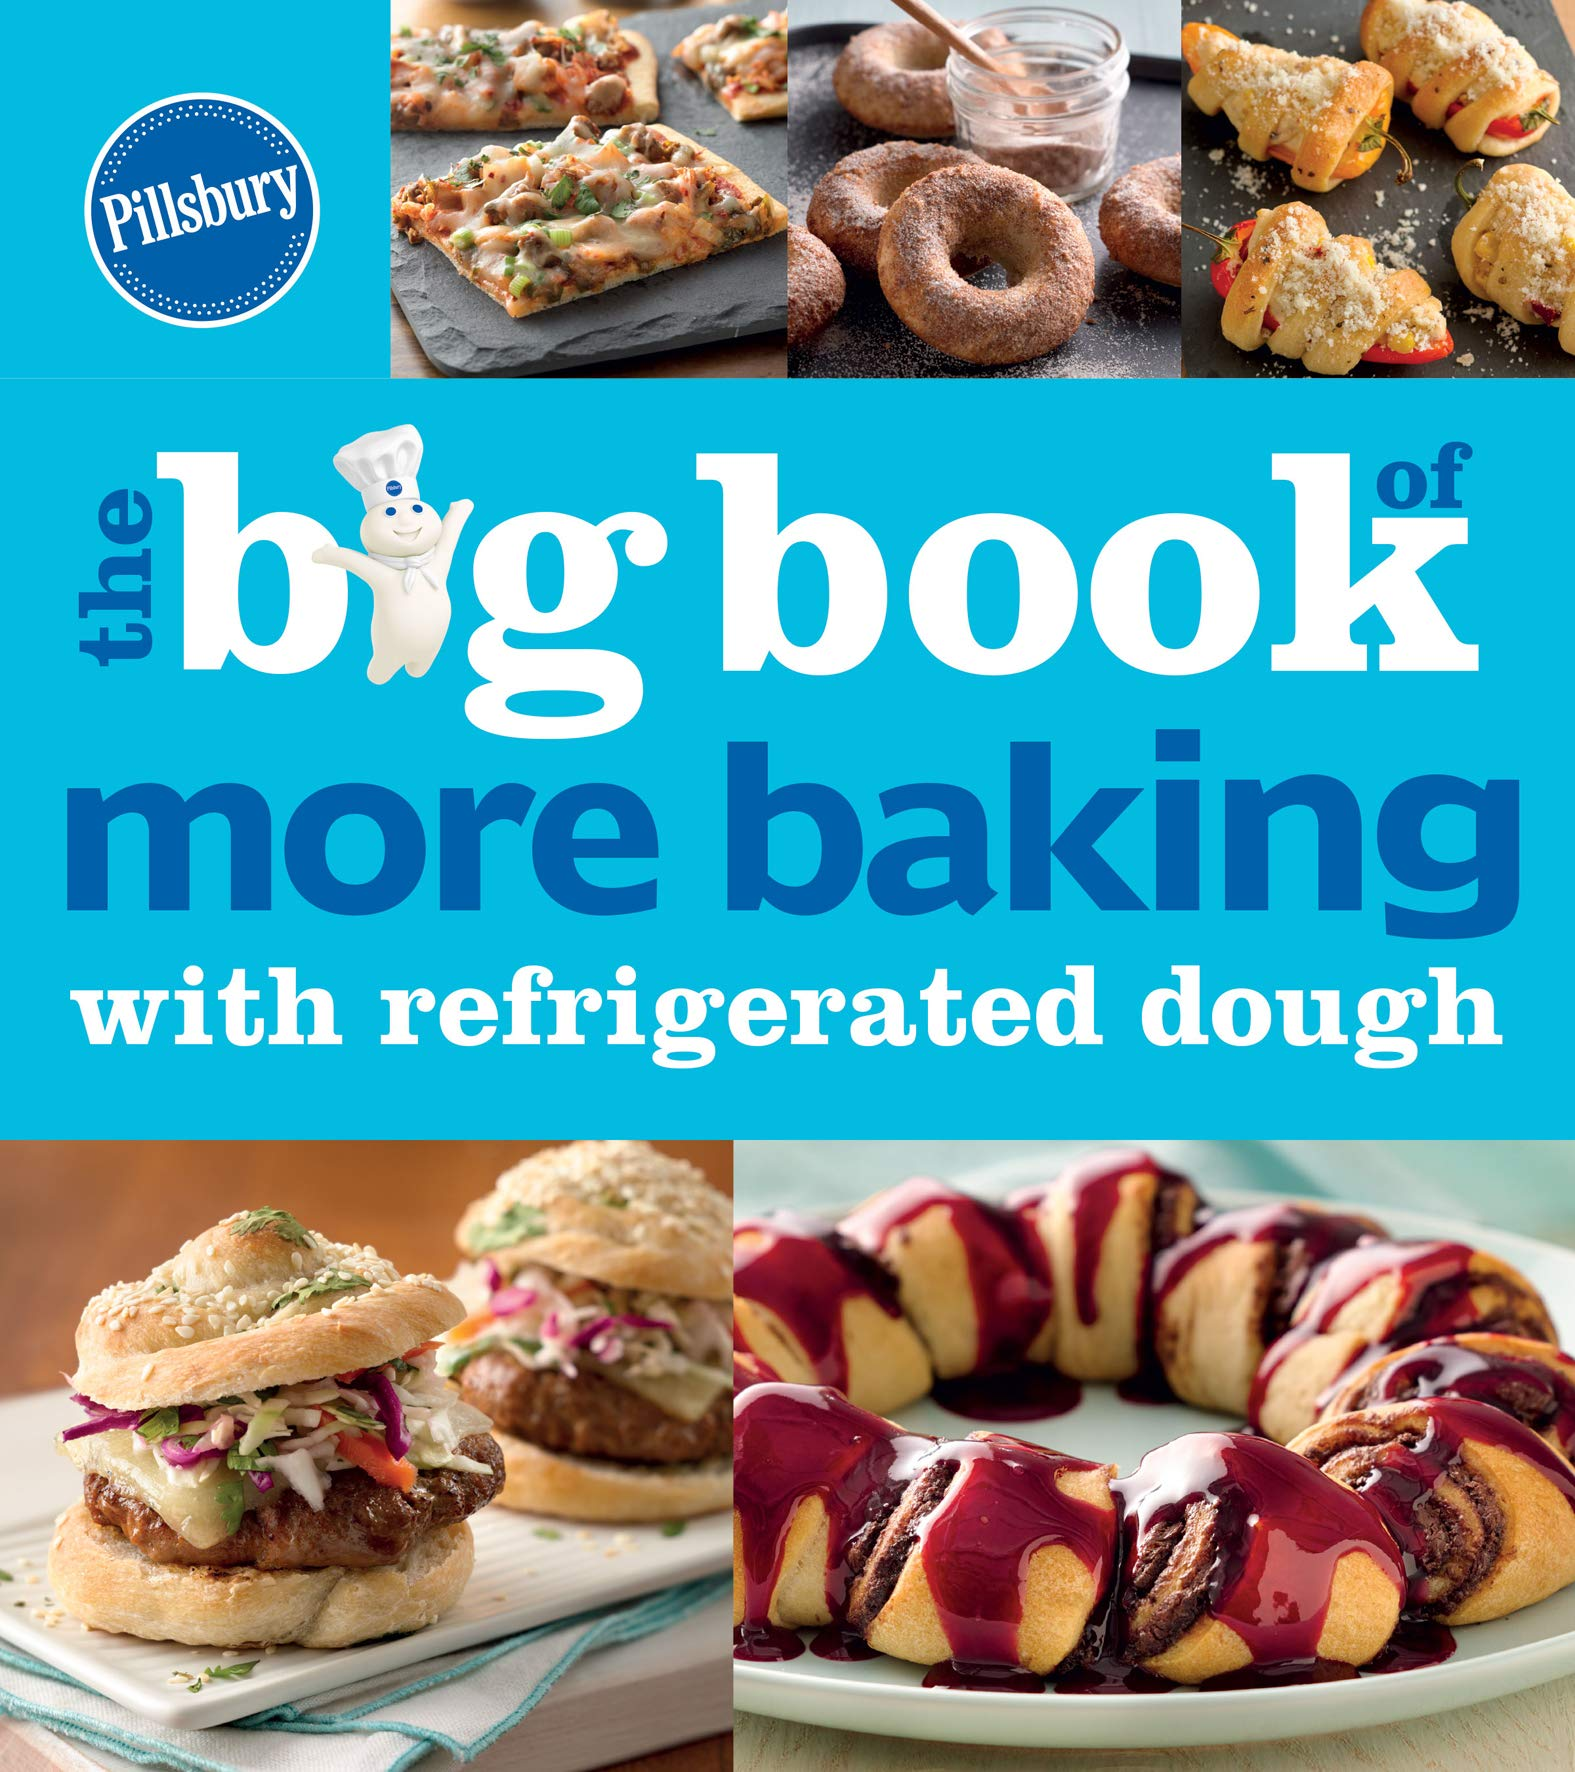 Pillsbury: The Big Book Of More Baking With Refrigerated Dough (Betty Crocker Big Books) (English Edition)